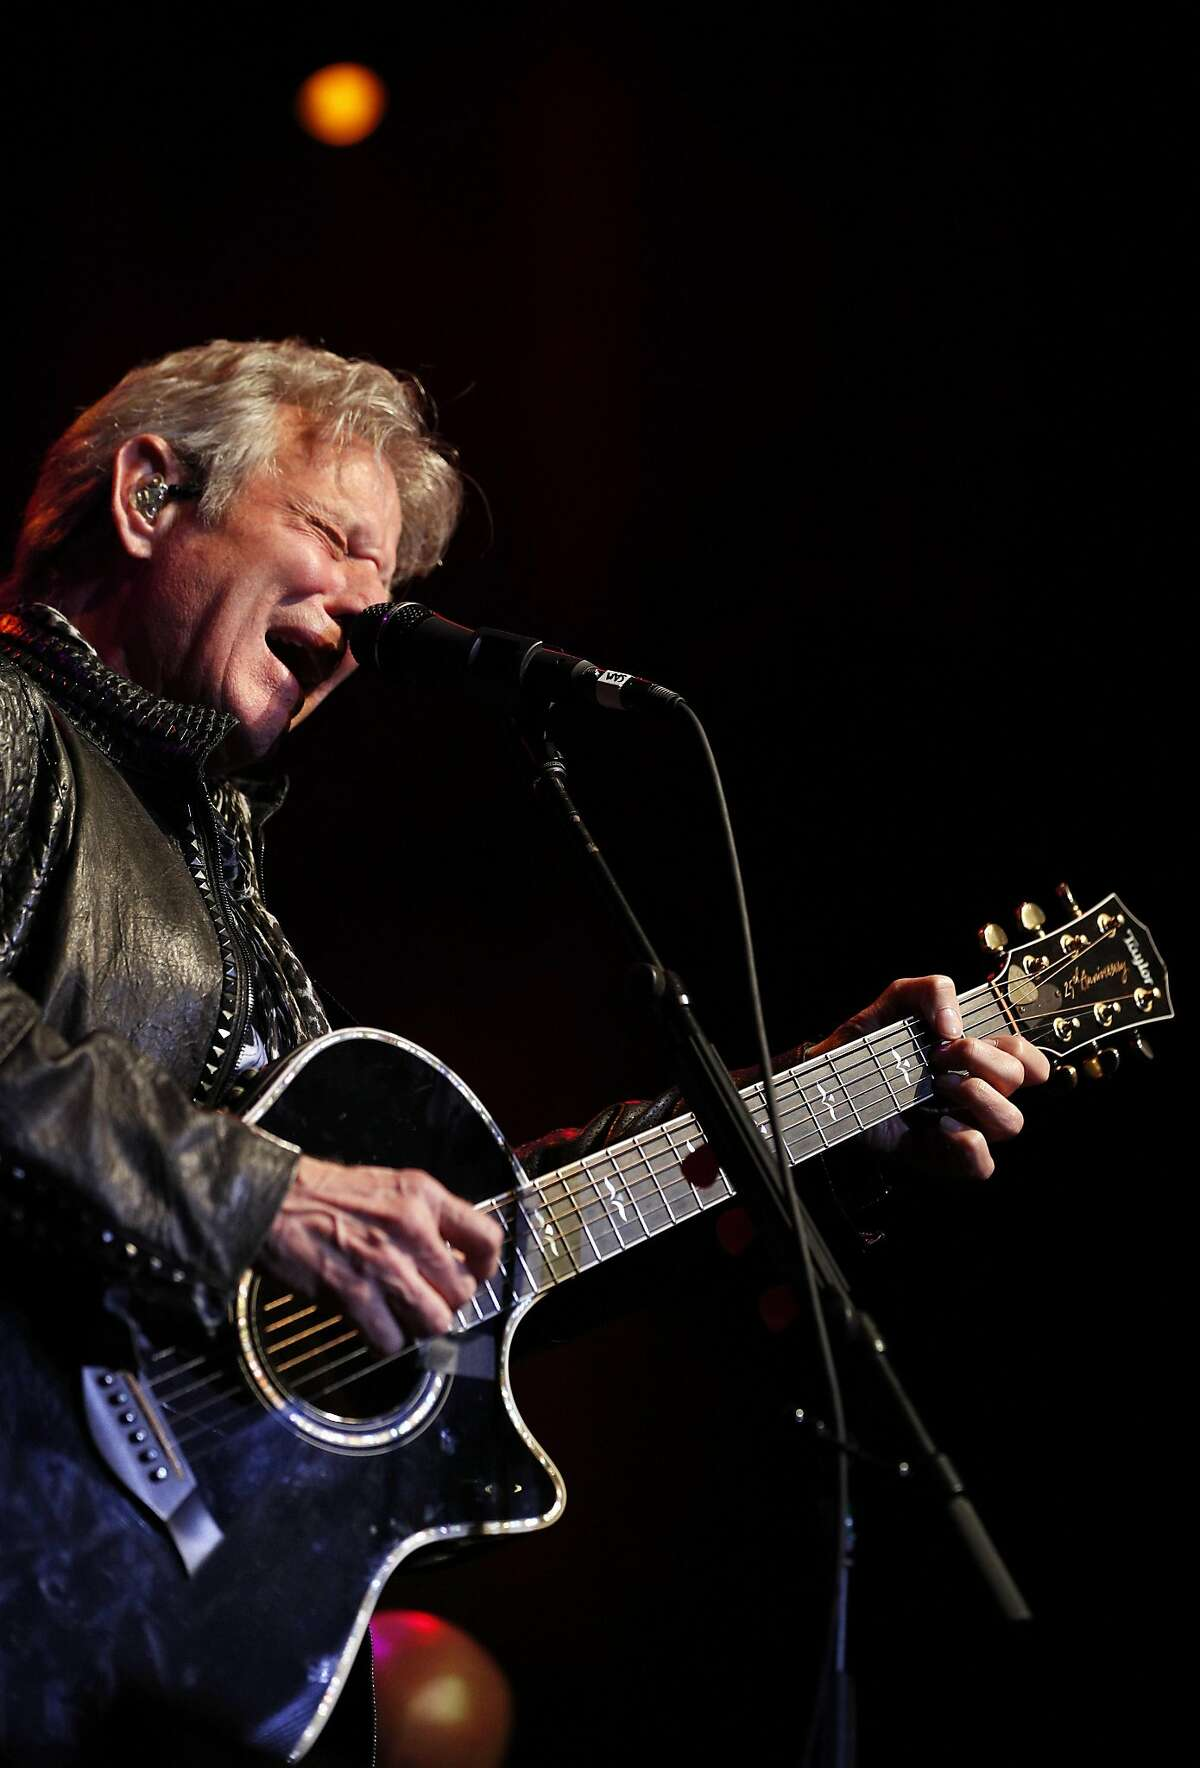 Don Felder performs during Acoustics 4 A Cure at the Fillmore in San Francisco, Calif., on Monday, May 15, 2017. The evening is a concert event created by Sammy Hagar and James Hetfield to help raise funds for the pediatric cancer research being performed at the UCSF Benioff Children's Hospital.